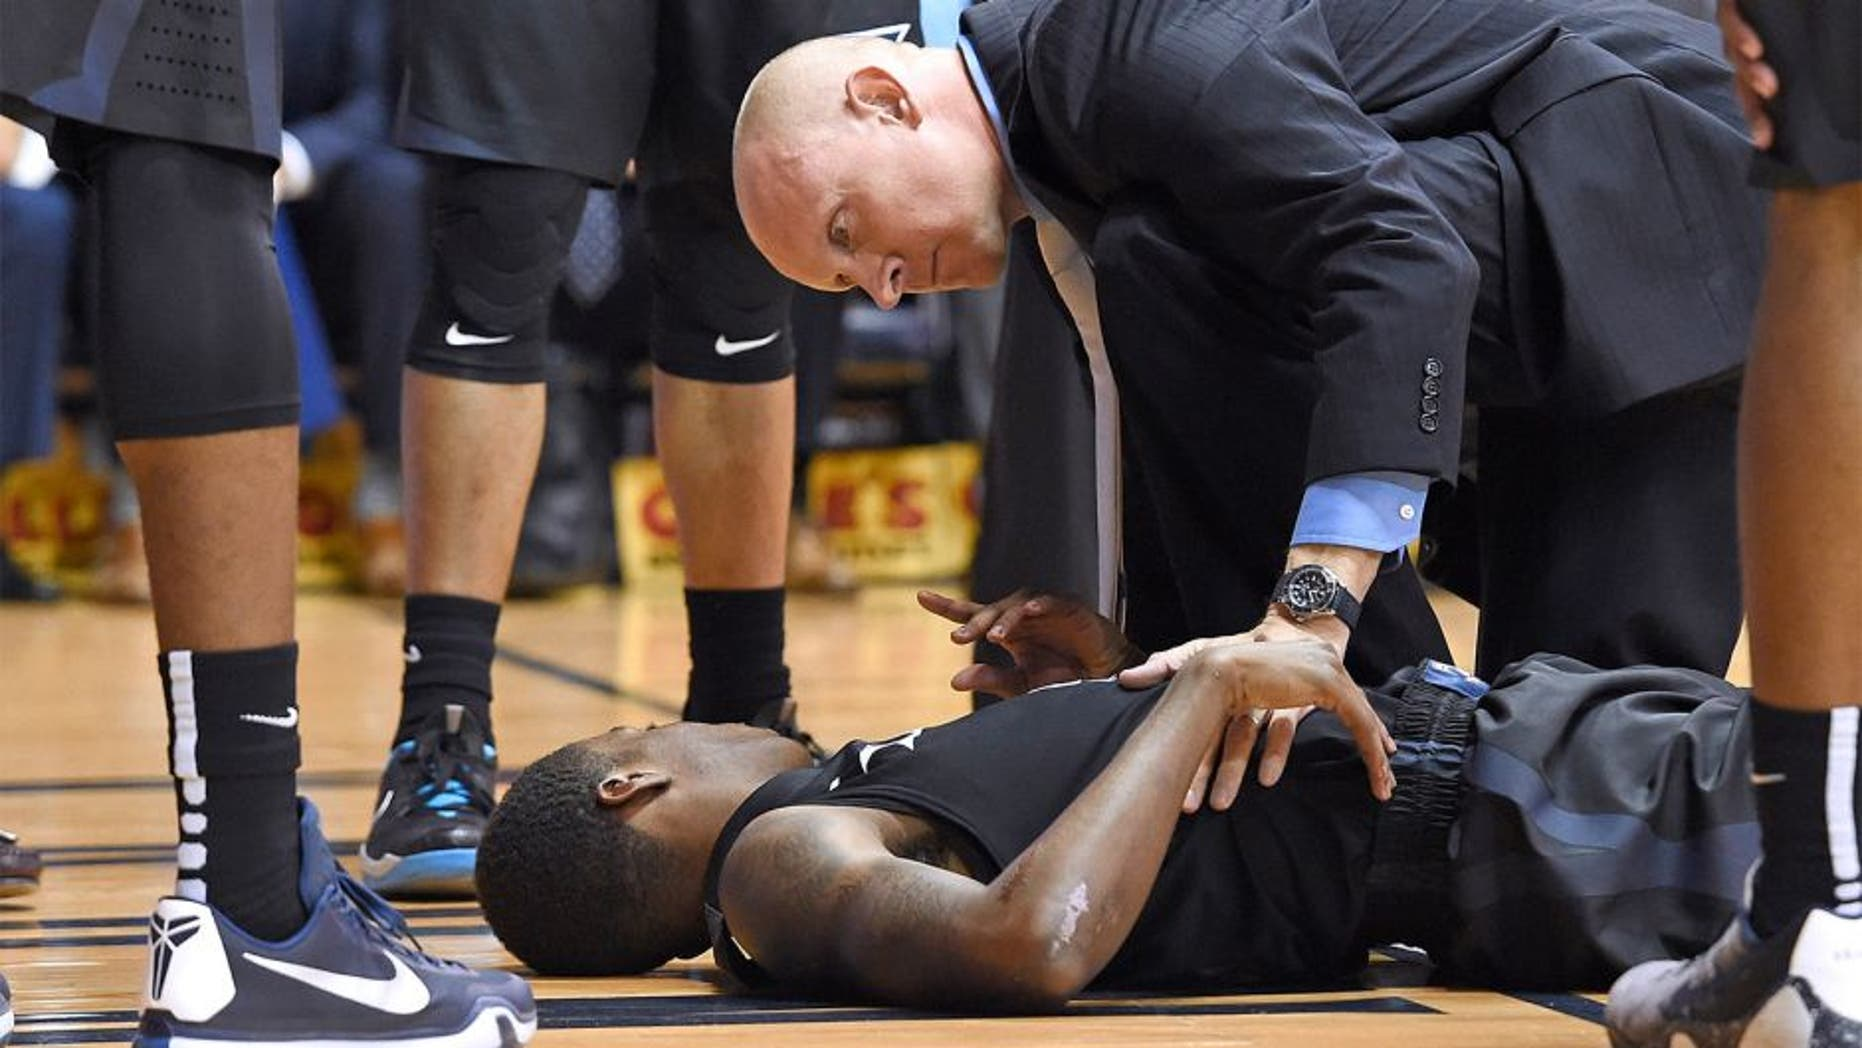 Dec 31, 2015; Villanova, PA, USA; Xavier Musketeers guard Edmond Sumner (4) is checked on by head coach Chris Mack (R) after being injured against the Villanova Wildcats during the first half at The Pavilion. Mandatory Credit: Eric Hartline-USA TODAY Sports